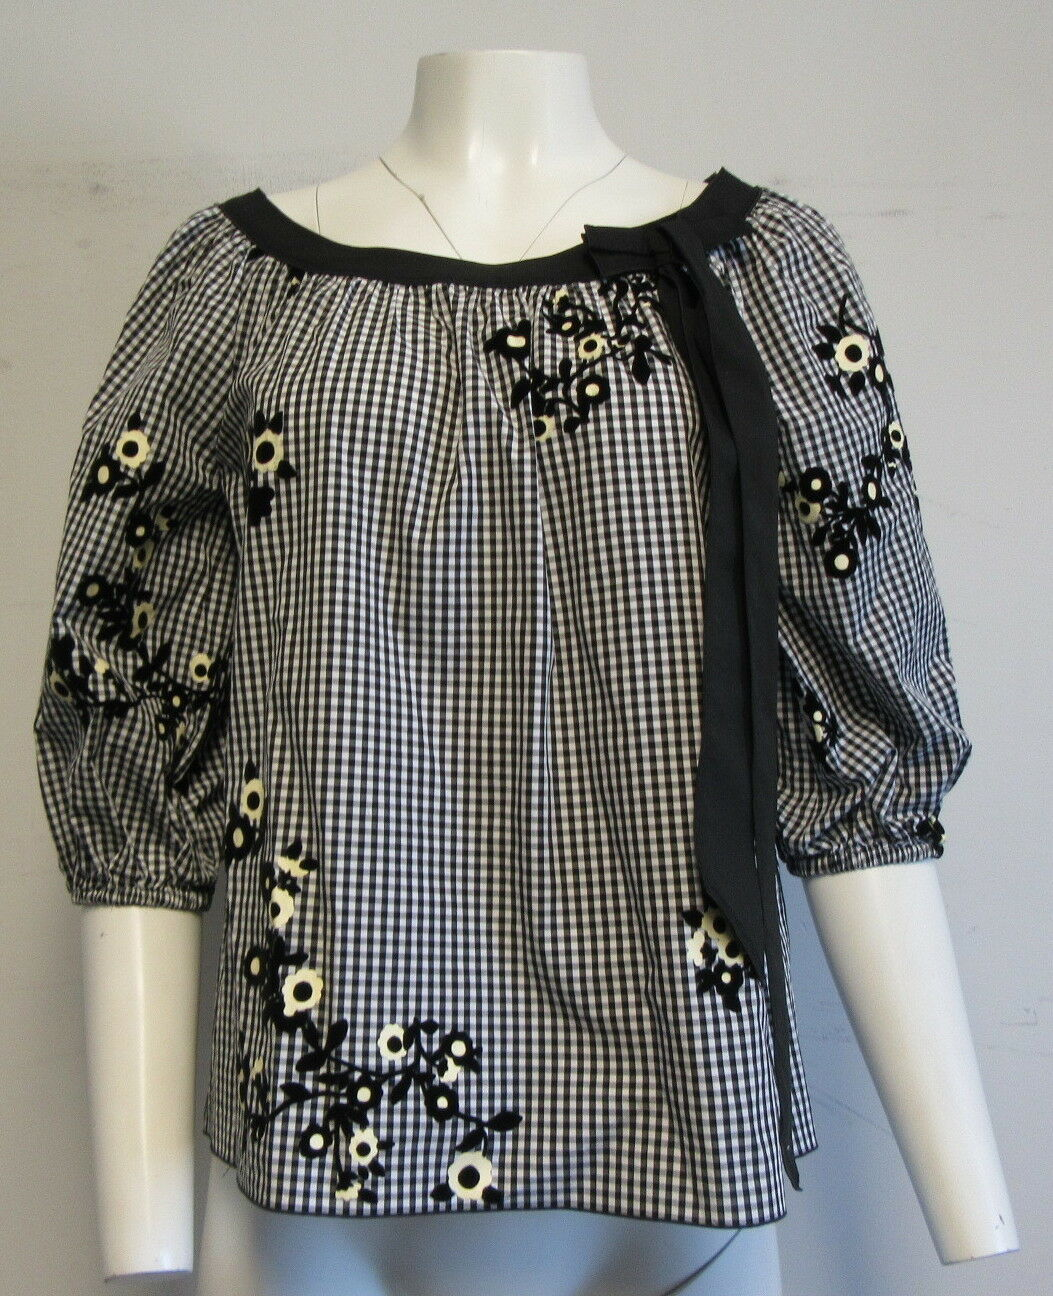 MARC JACOBS schwarz Weiß floral gingham blouse with bow SZ 6